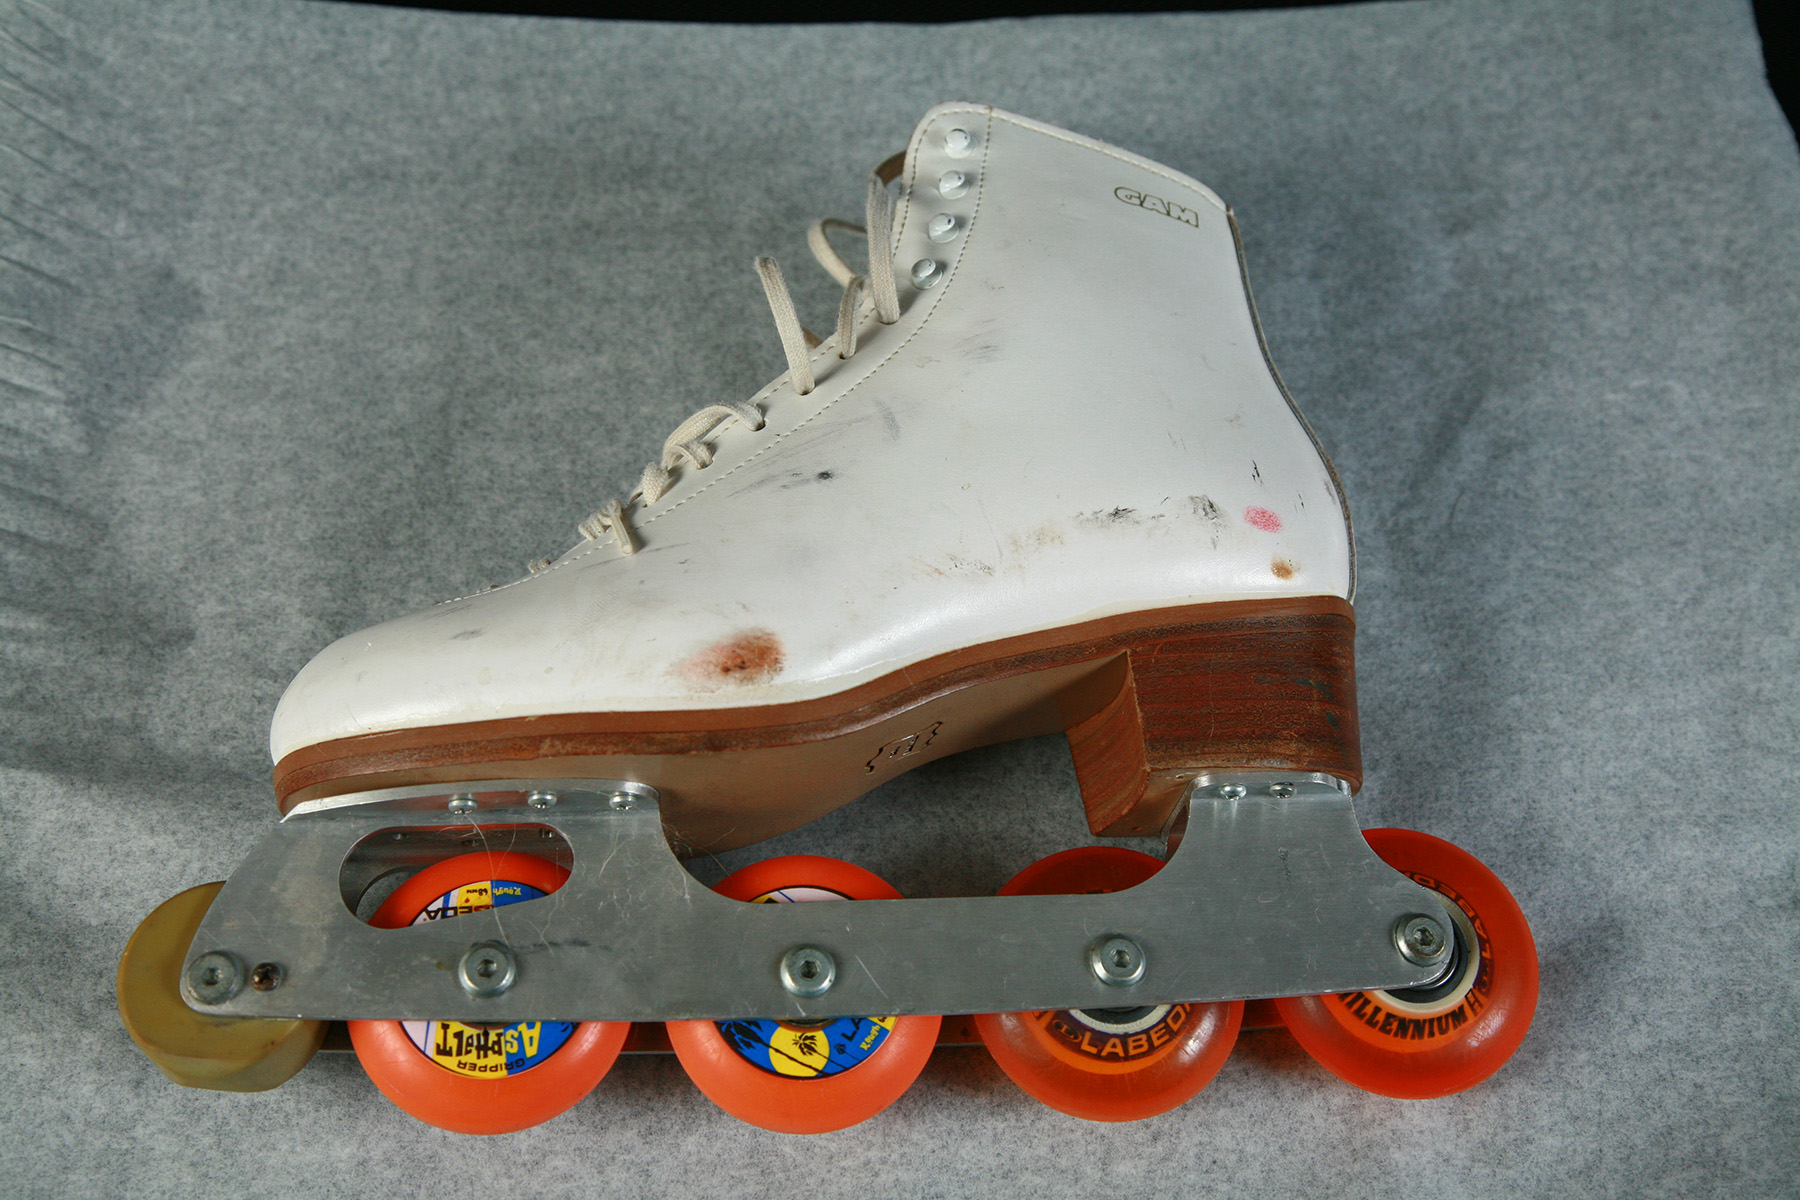 A white inline roller figure skate is pictured against a sheet of translucent white paper.